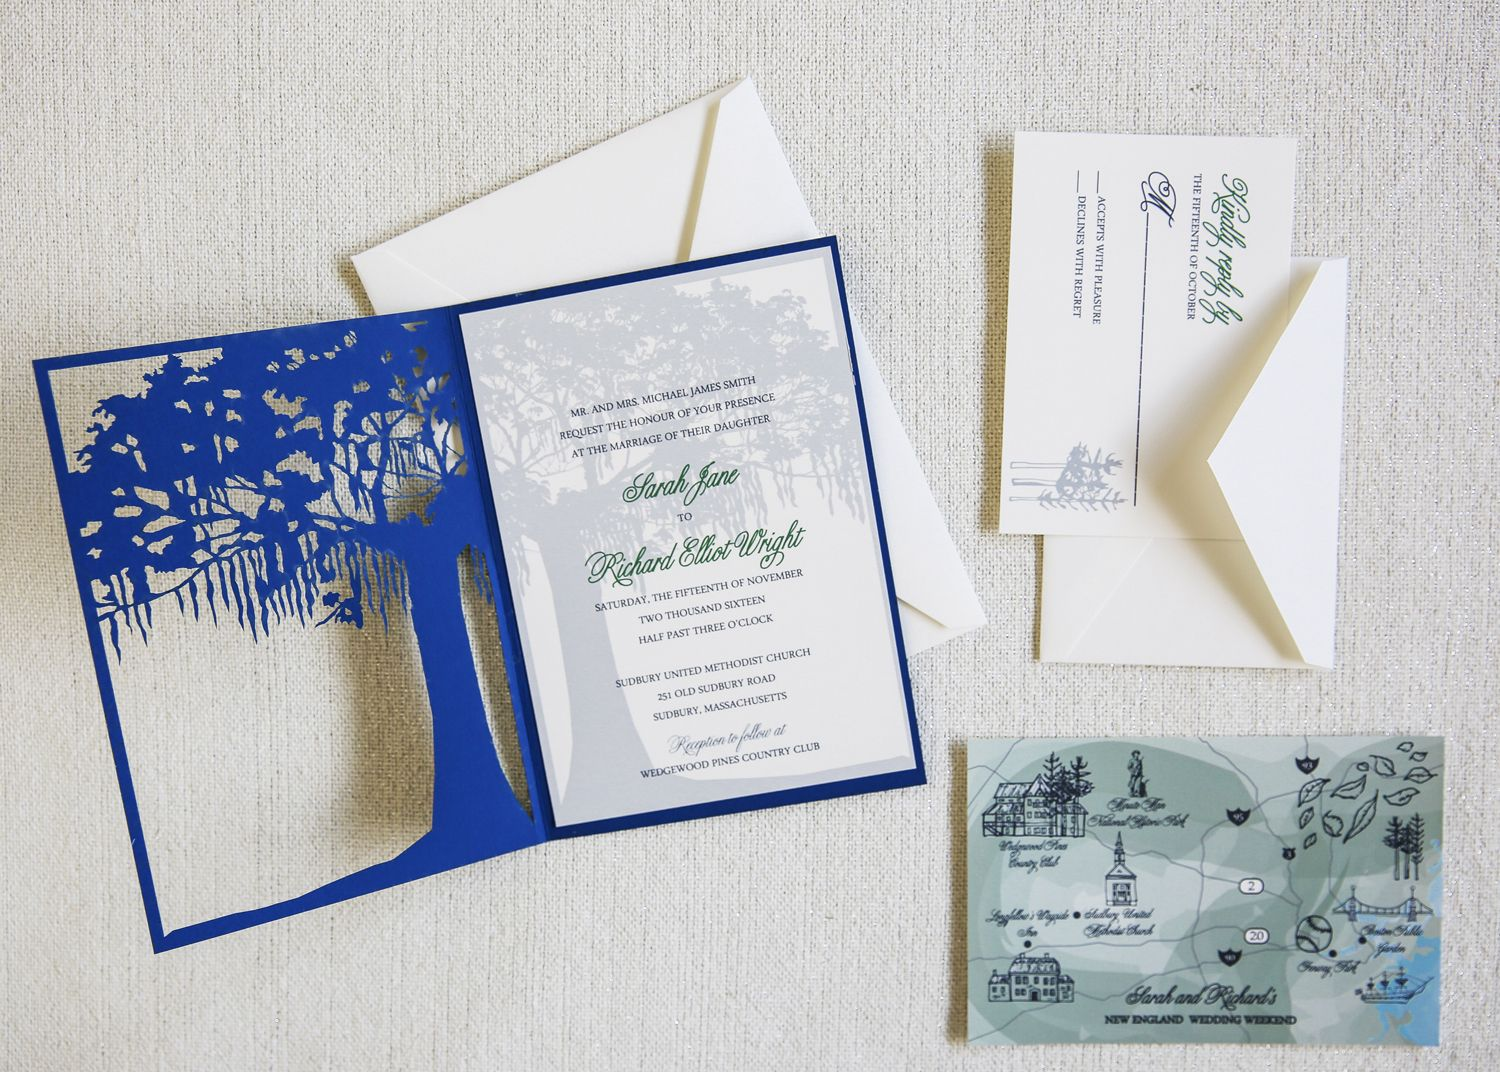 Laser cut tree invitation by dodeline with spanish moss charleston laser cut tree invitation by dodeline with spanish moss charleston tree folding over wedding invite stopboris Images